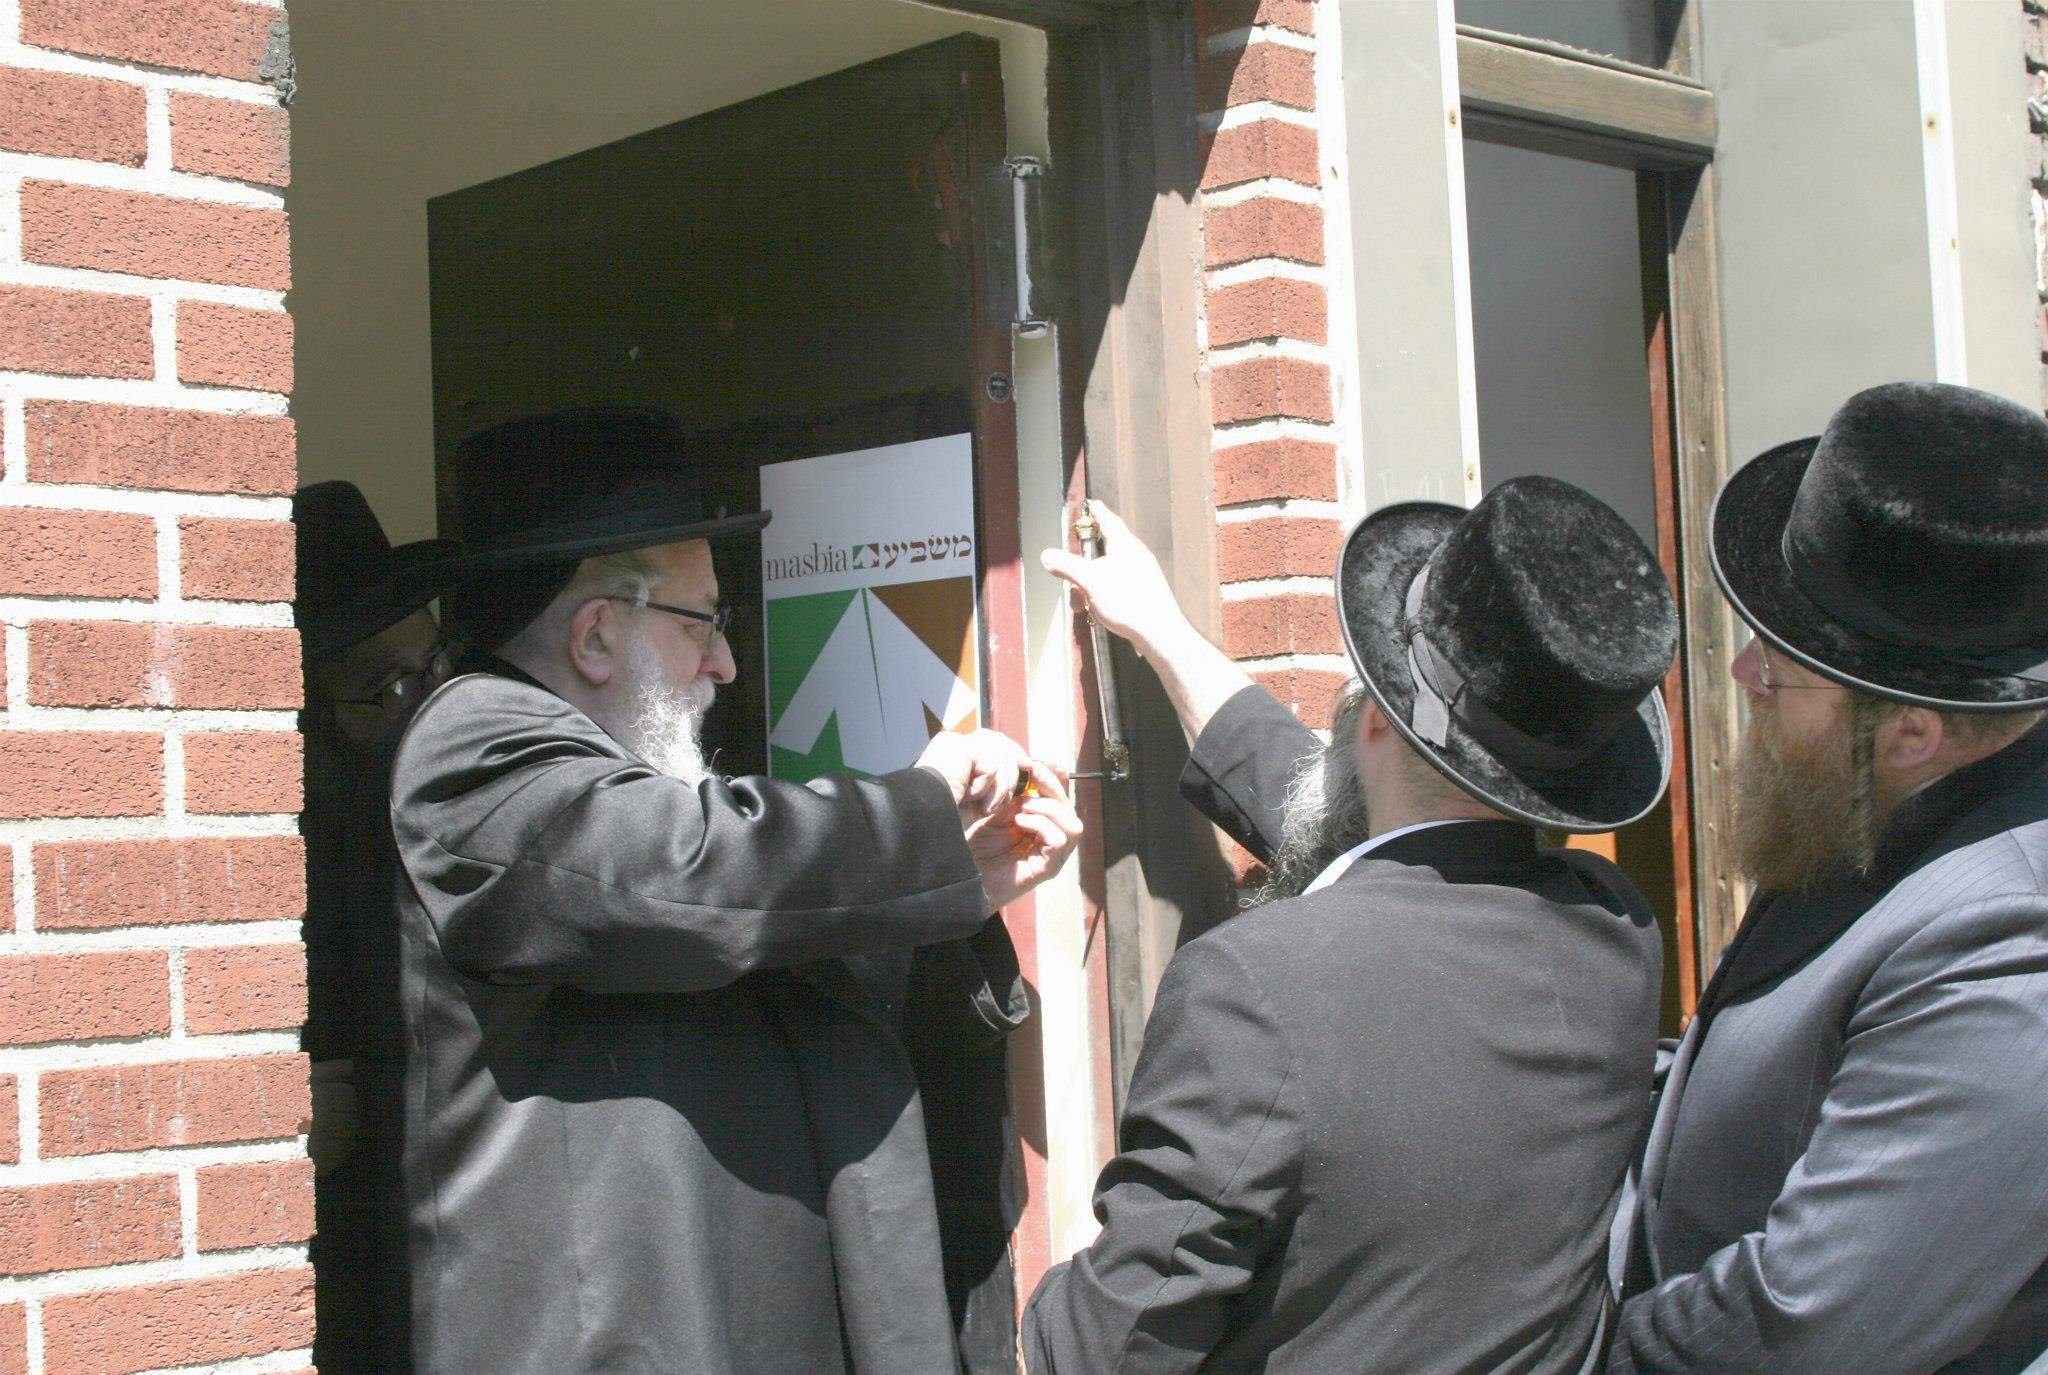 Masbia_Supporter__Rachmastrivka_Rebbe__Rabbi_Chai_Yitzchok_Twersky_Affixing_the_Mezuzah_at_Masbia_of_Boro_Park.jpg